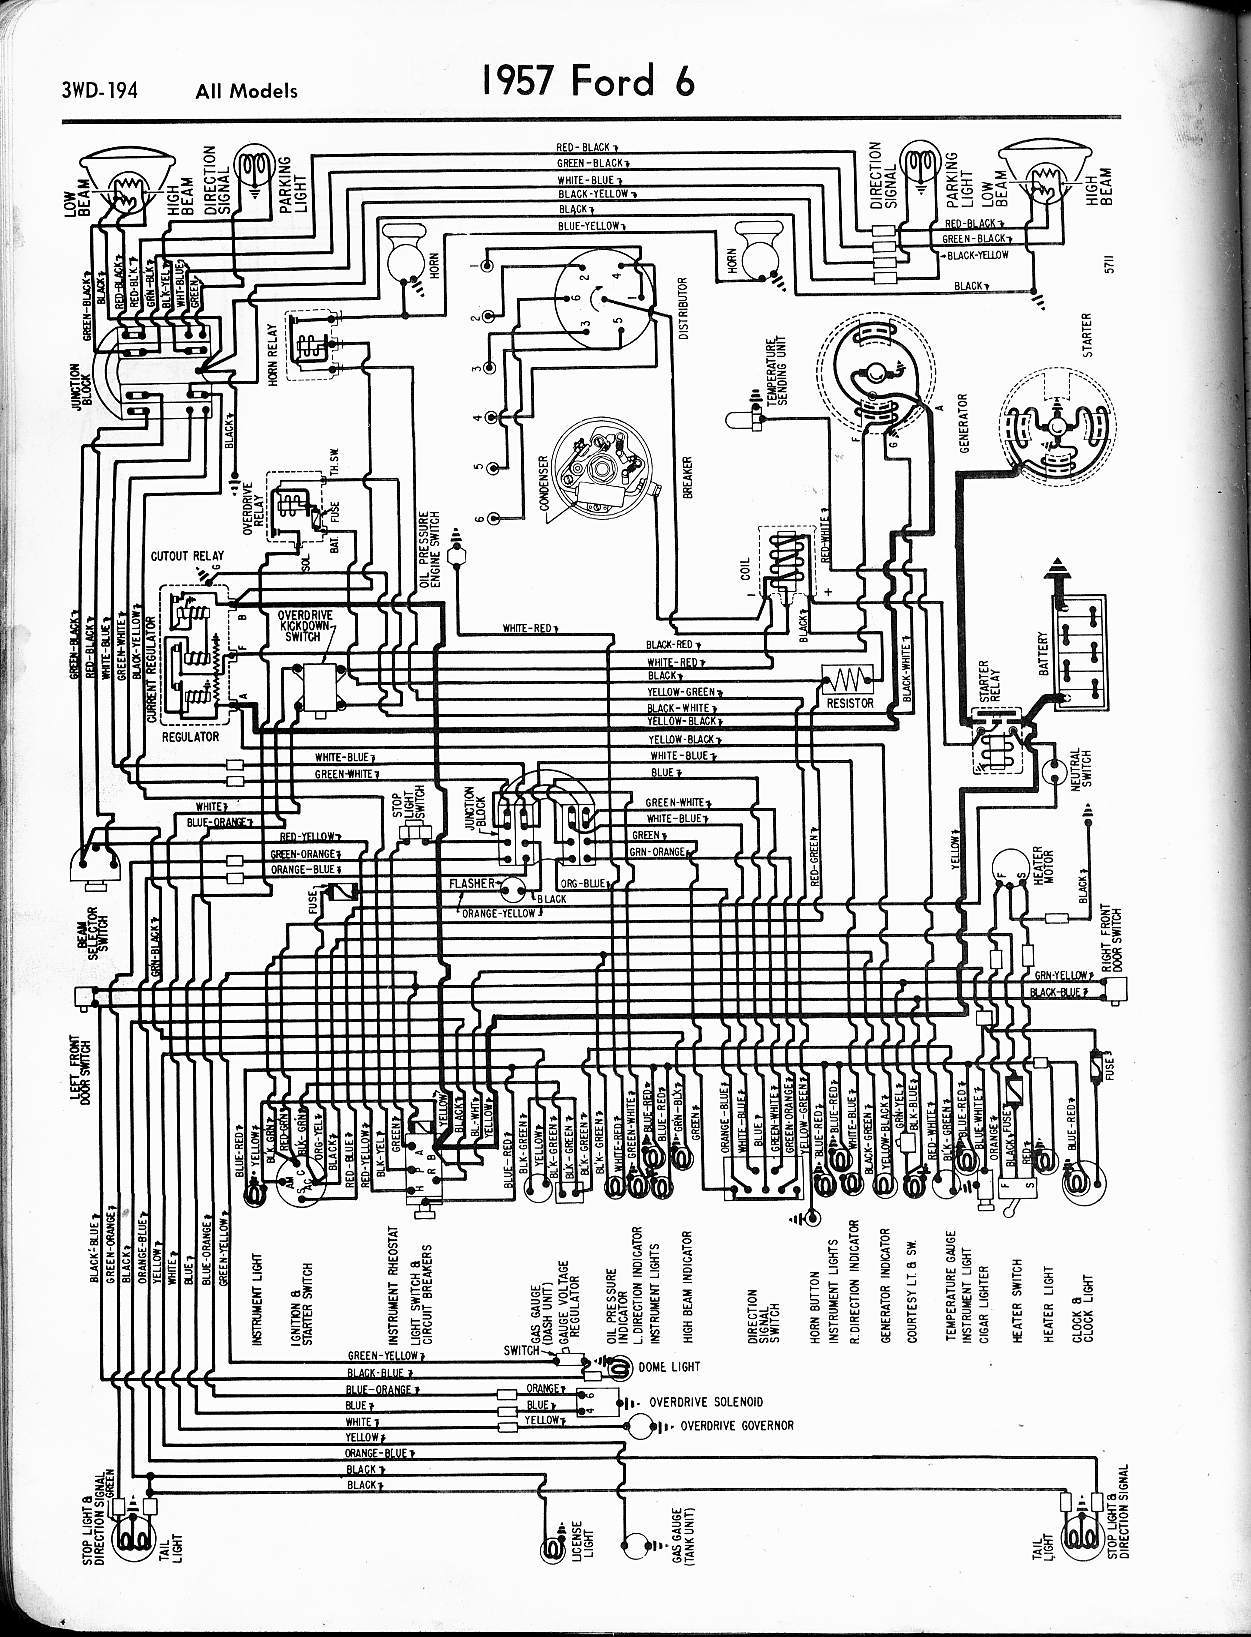 80 2010_07_23_013626_1957_ford_wiring_451fe1d3aafe571893763e4bcbb92521b2870e9d ford fairlane wiring diagram 1 on ford fairlane wiring diagram